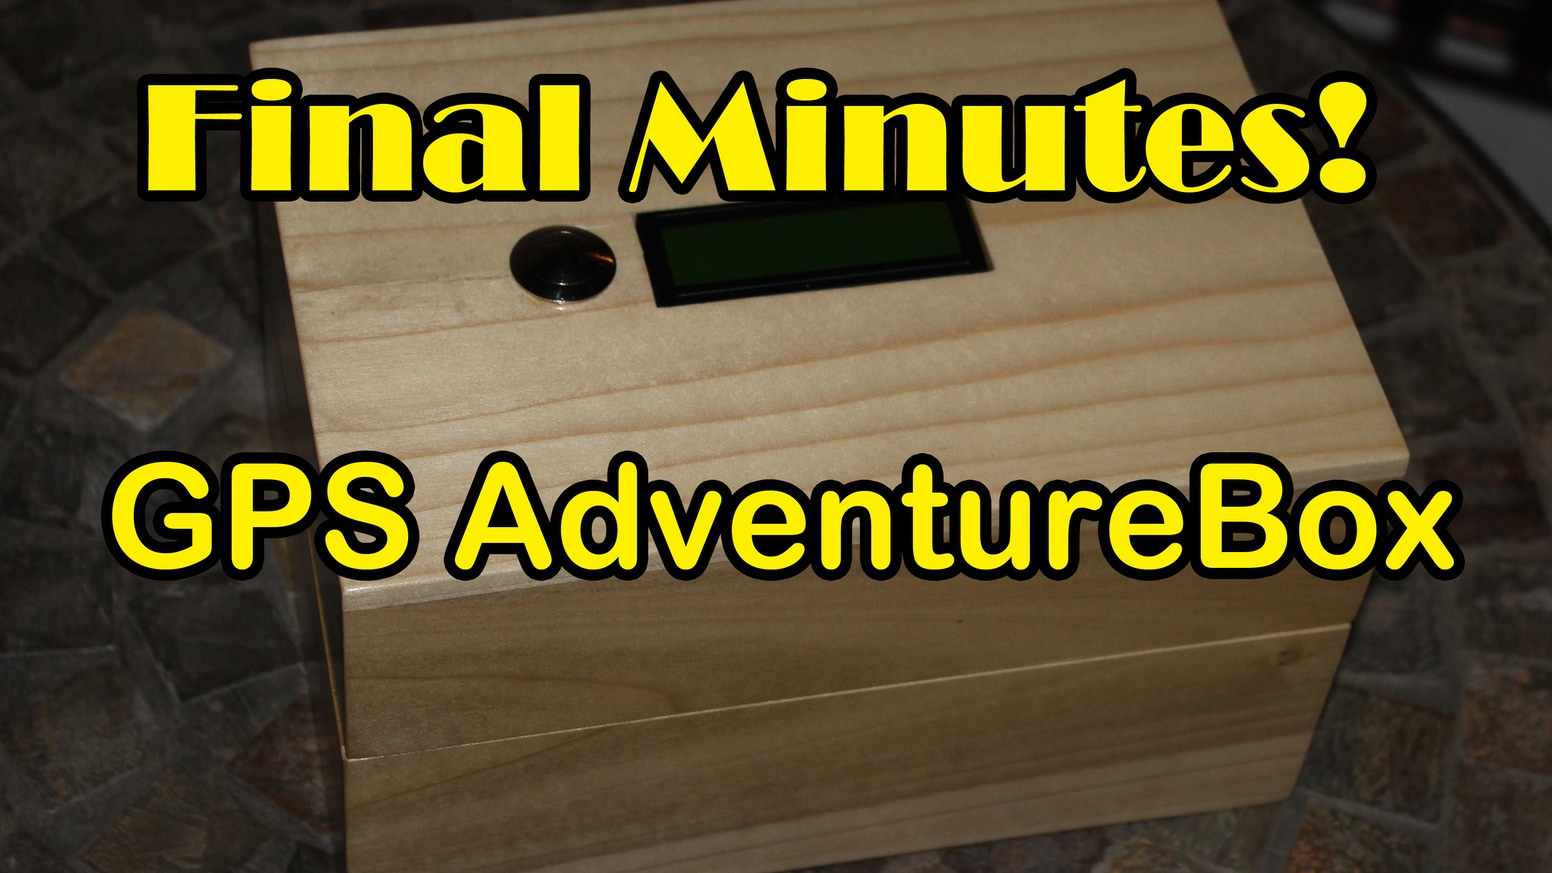 Gps Adventurebox Give The Gift Of Fun And Adventure By Garrett Aware Wiring Diagram This Arduino Based Project Allows Giver To Send Recipient On A